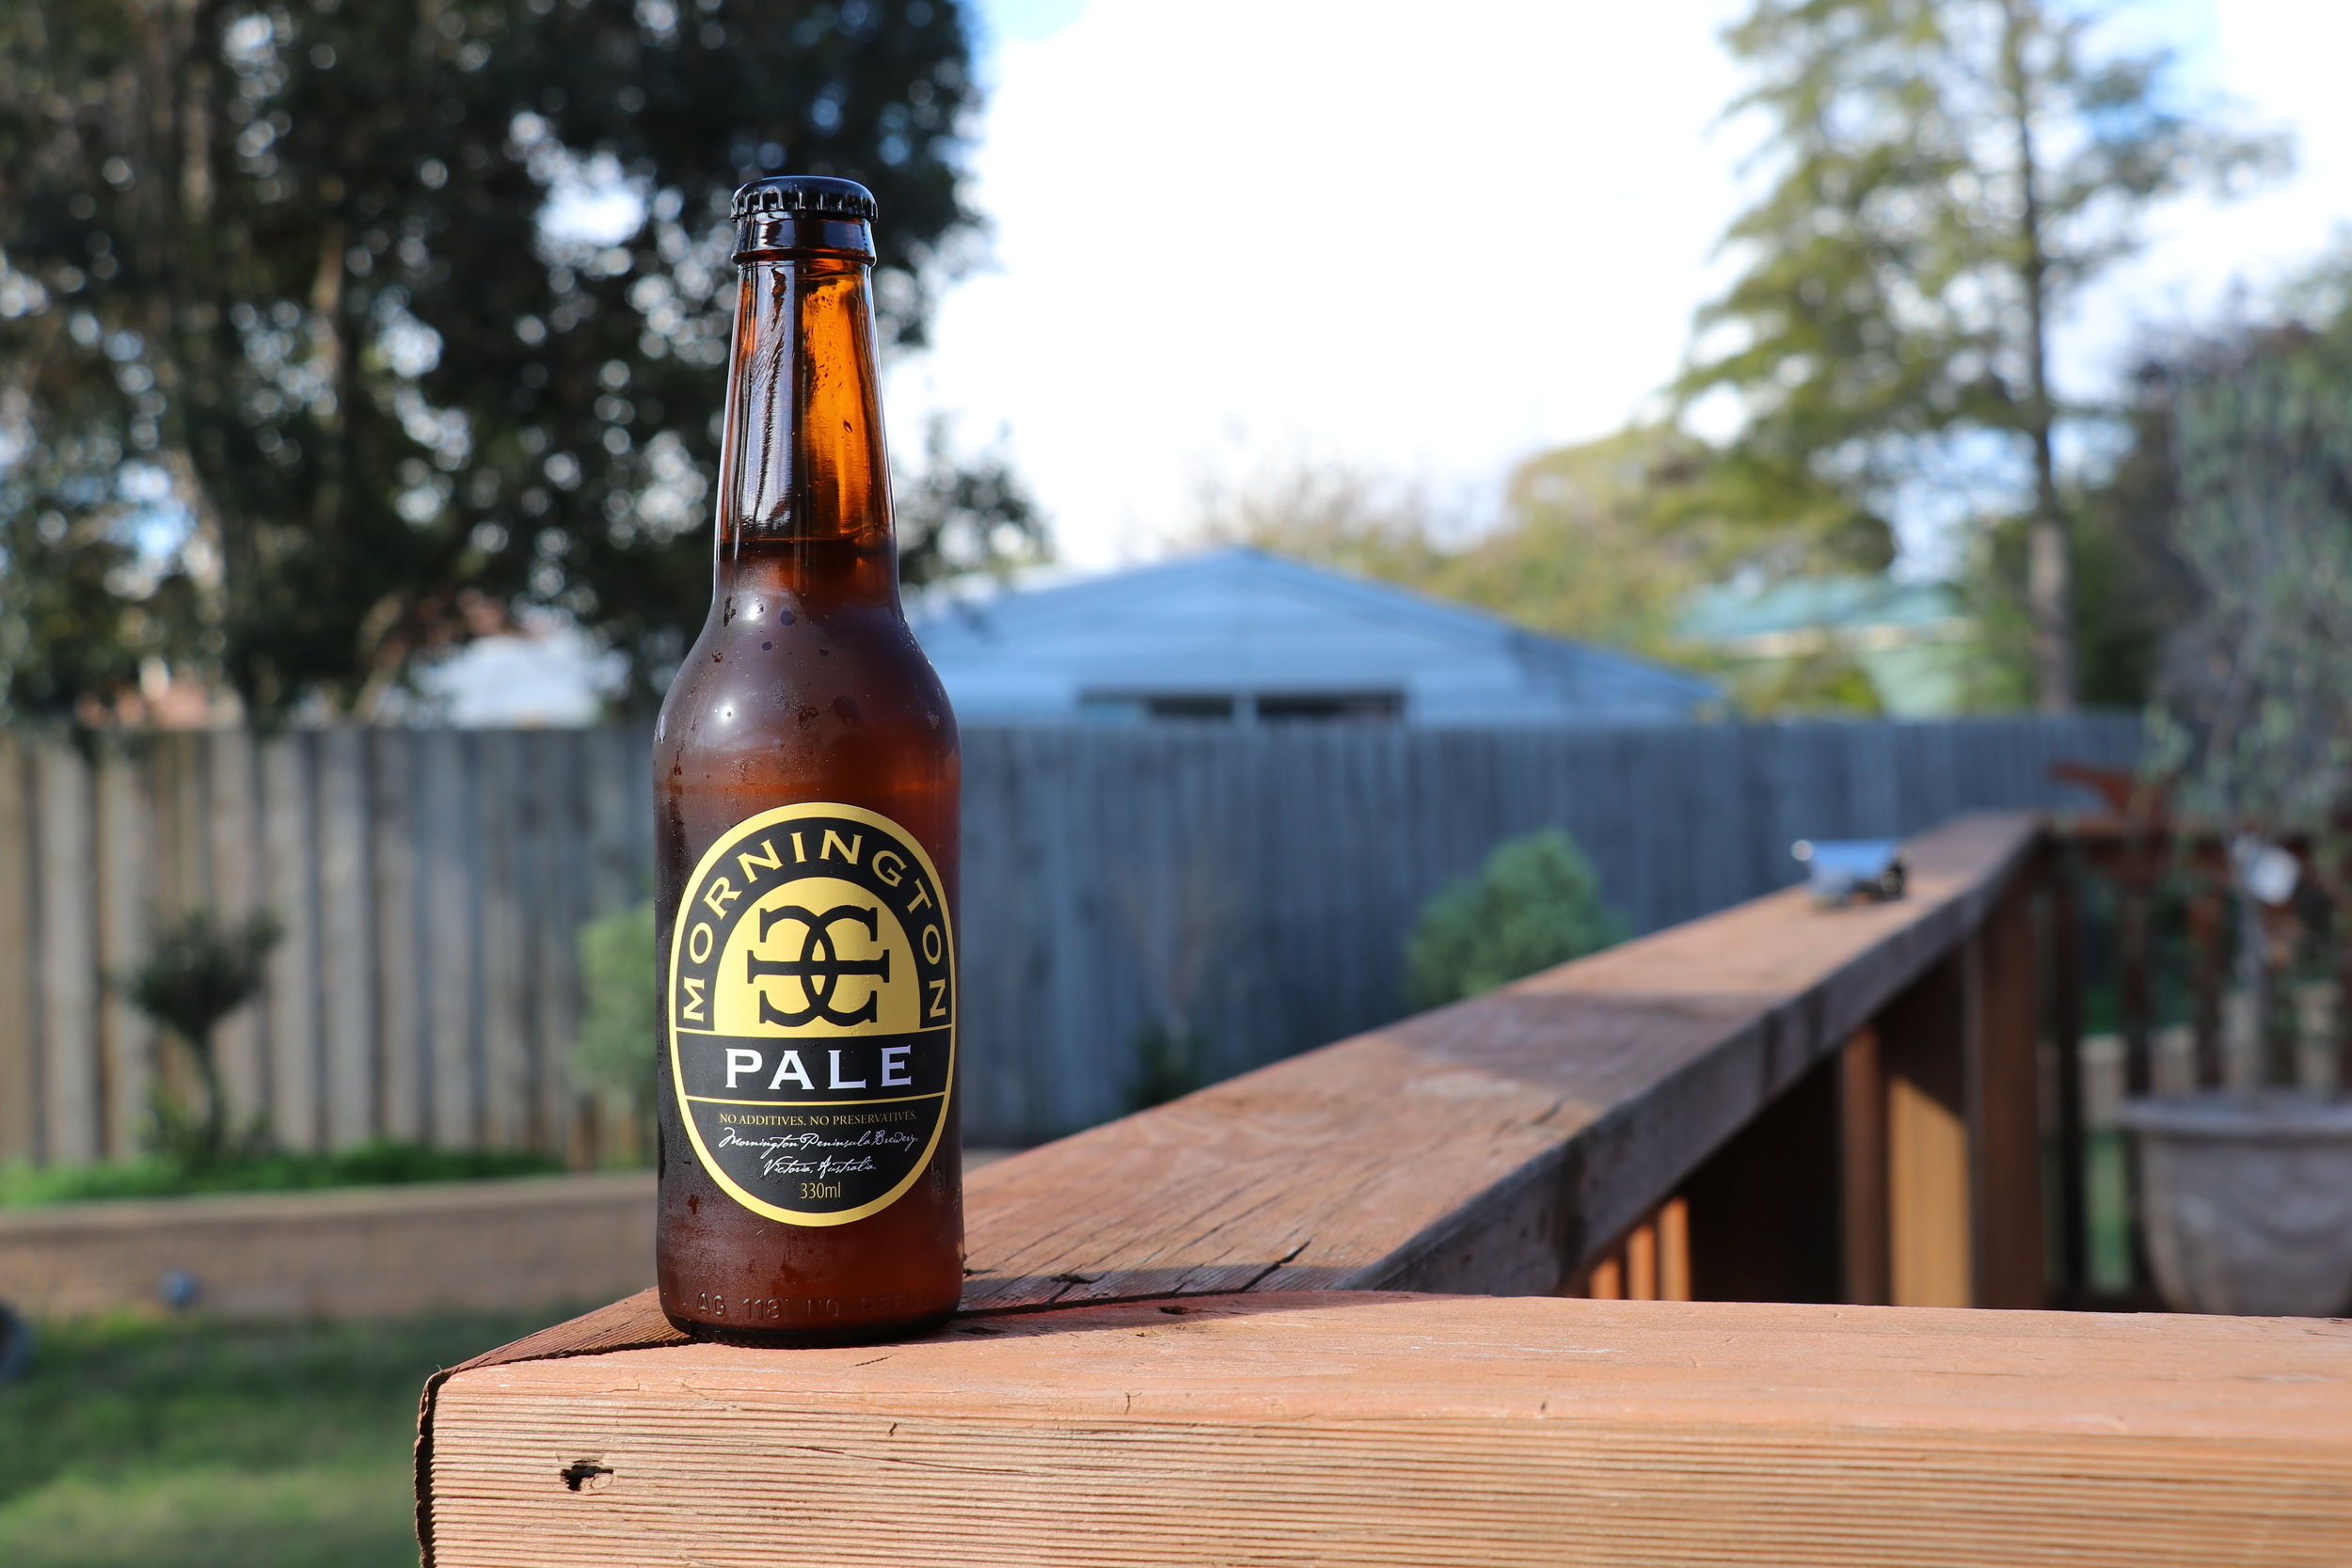 Mornington Pale Ale